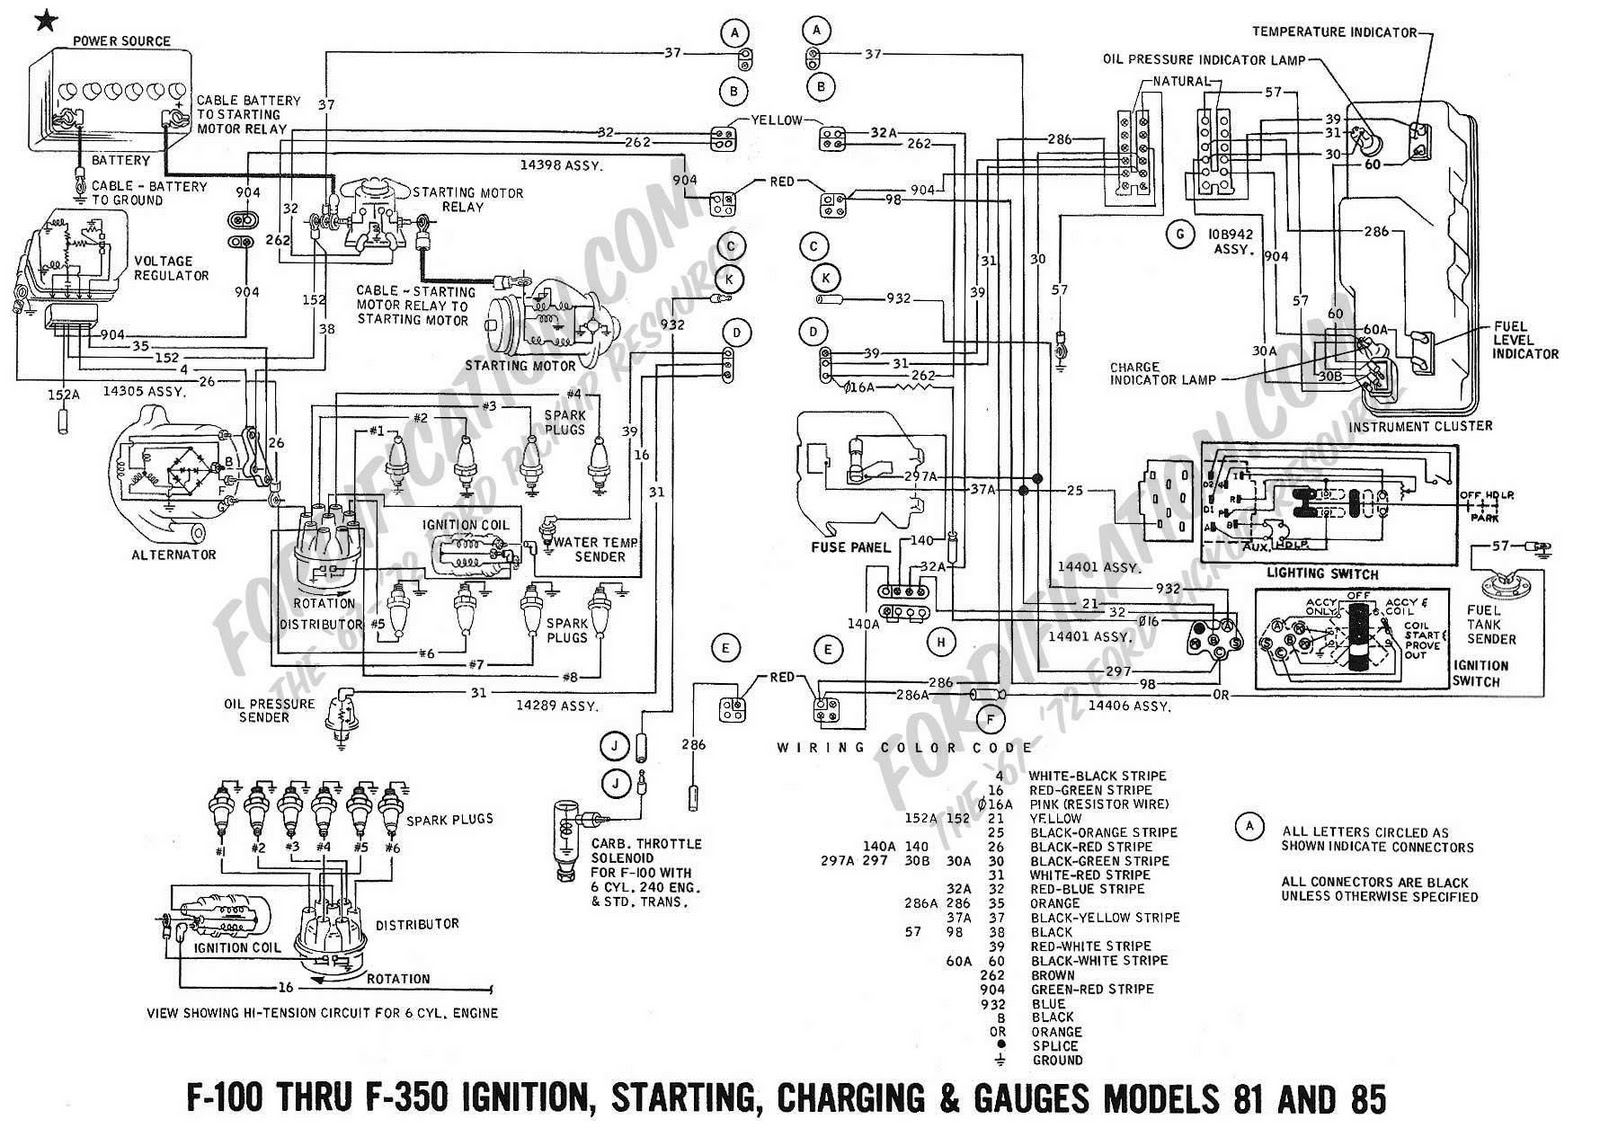 0c422 Jeep Wrangler Ignition Module Wiring Diagram Wiring Resources